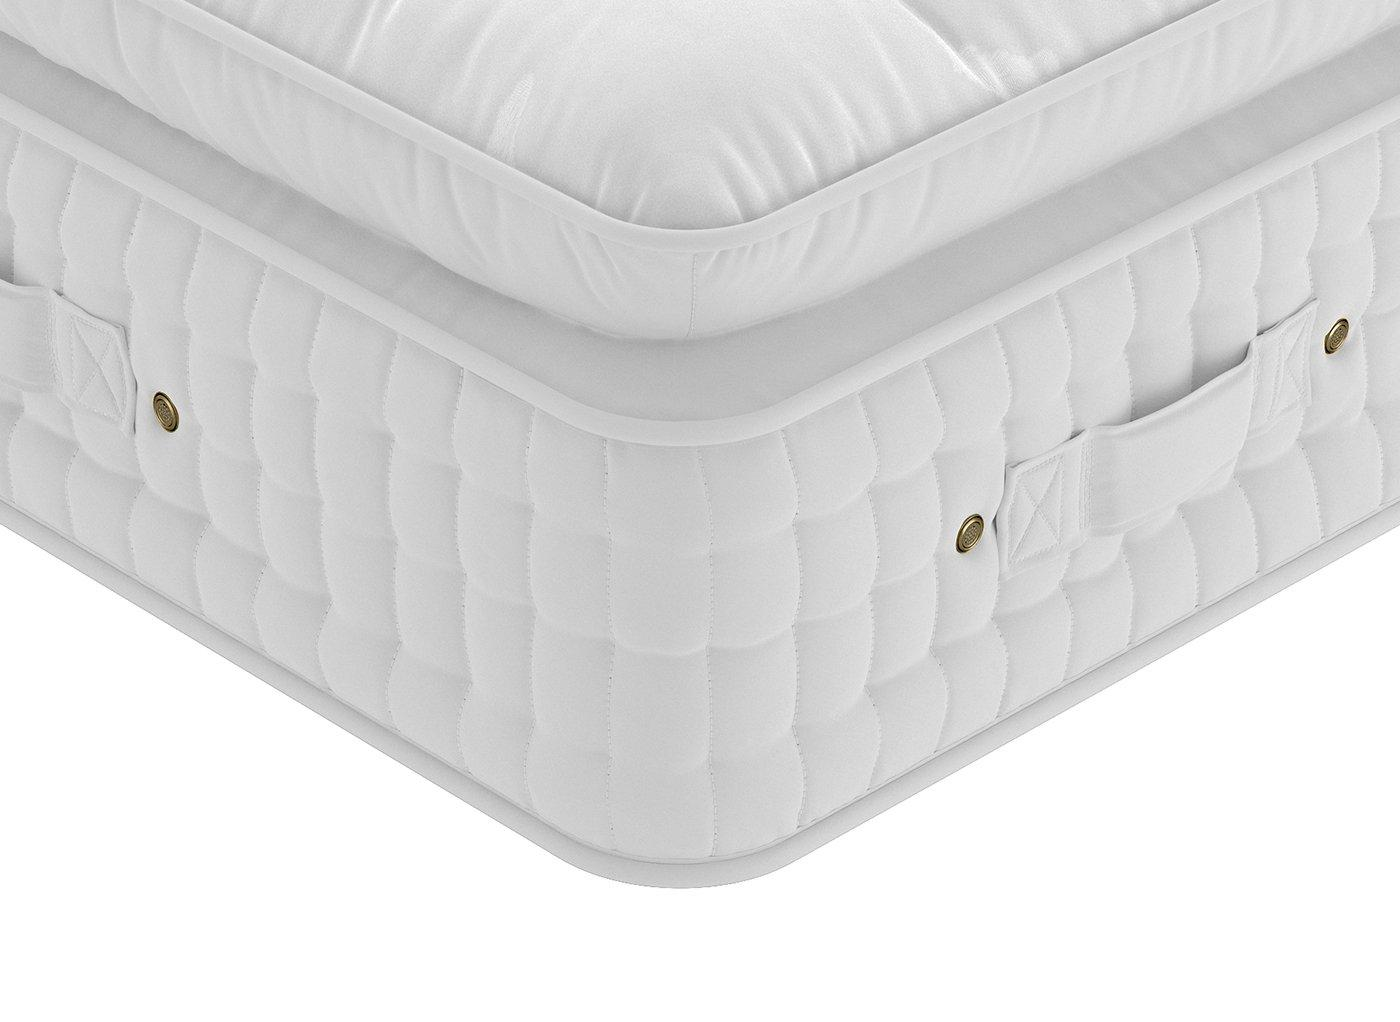 Flaxby nature's finest 15,400 sk mattress medium zipped 6'0 super king